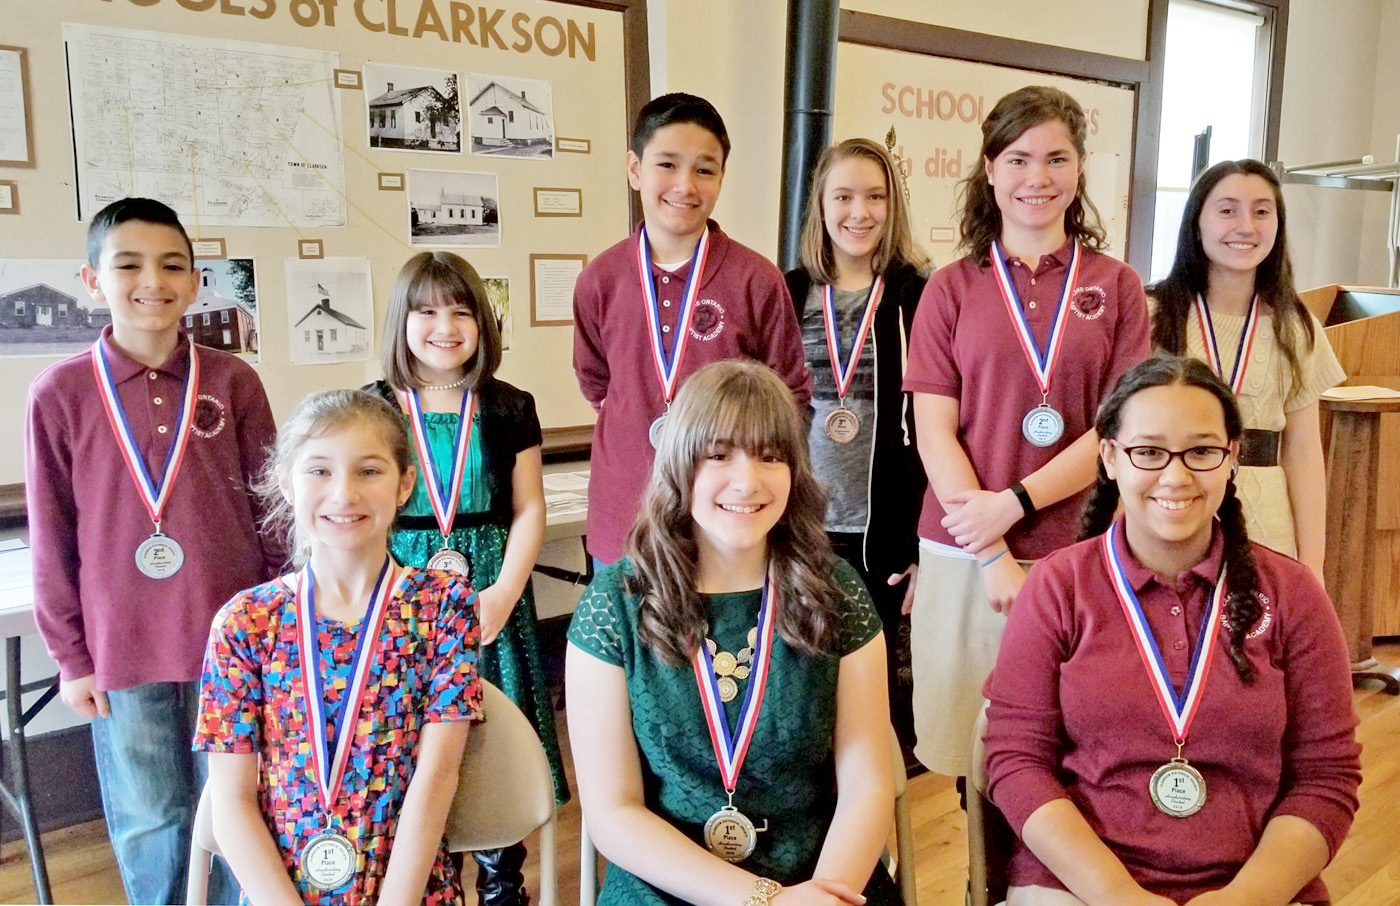 Winners in the Clarkson Historical Society's fourth annual handwriting contest were honored at the Clarkson Academy on January 28. Seated (l to r): Alice Dickerson, Cynthia Harris, Kayleigh Rodell.Standing (l to r): Andrew Martinez, Candace Harris, Victor Martinez, Emma Lenhard, Claire Buck, Emily Gol. Their schools and placements appear in the adjoining story. Photo by Dianne Hickerson